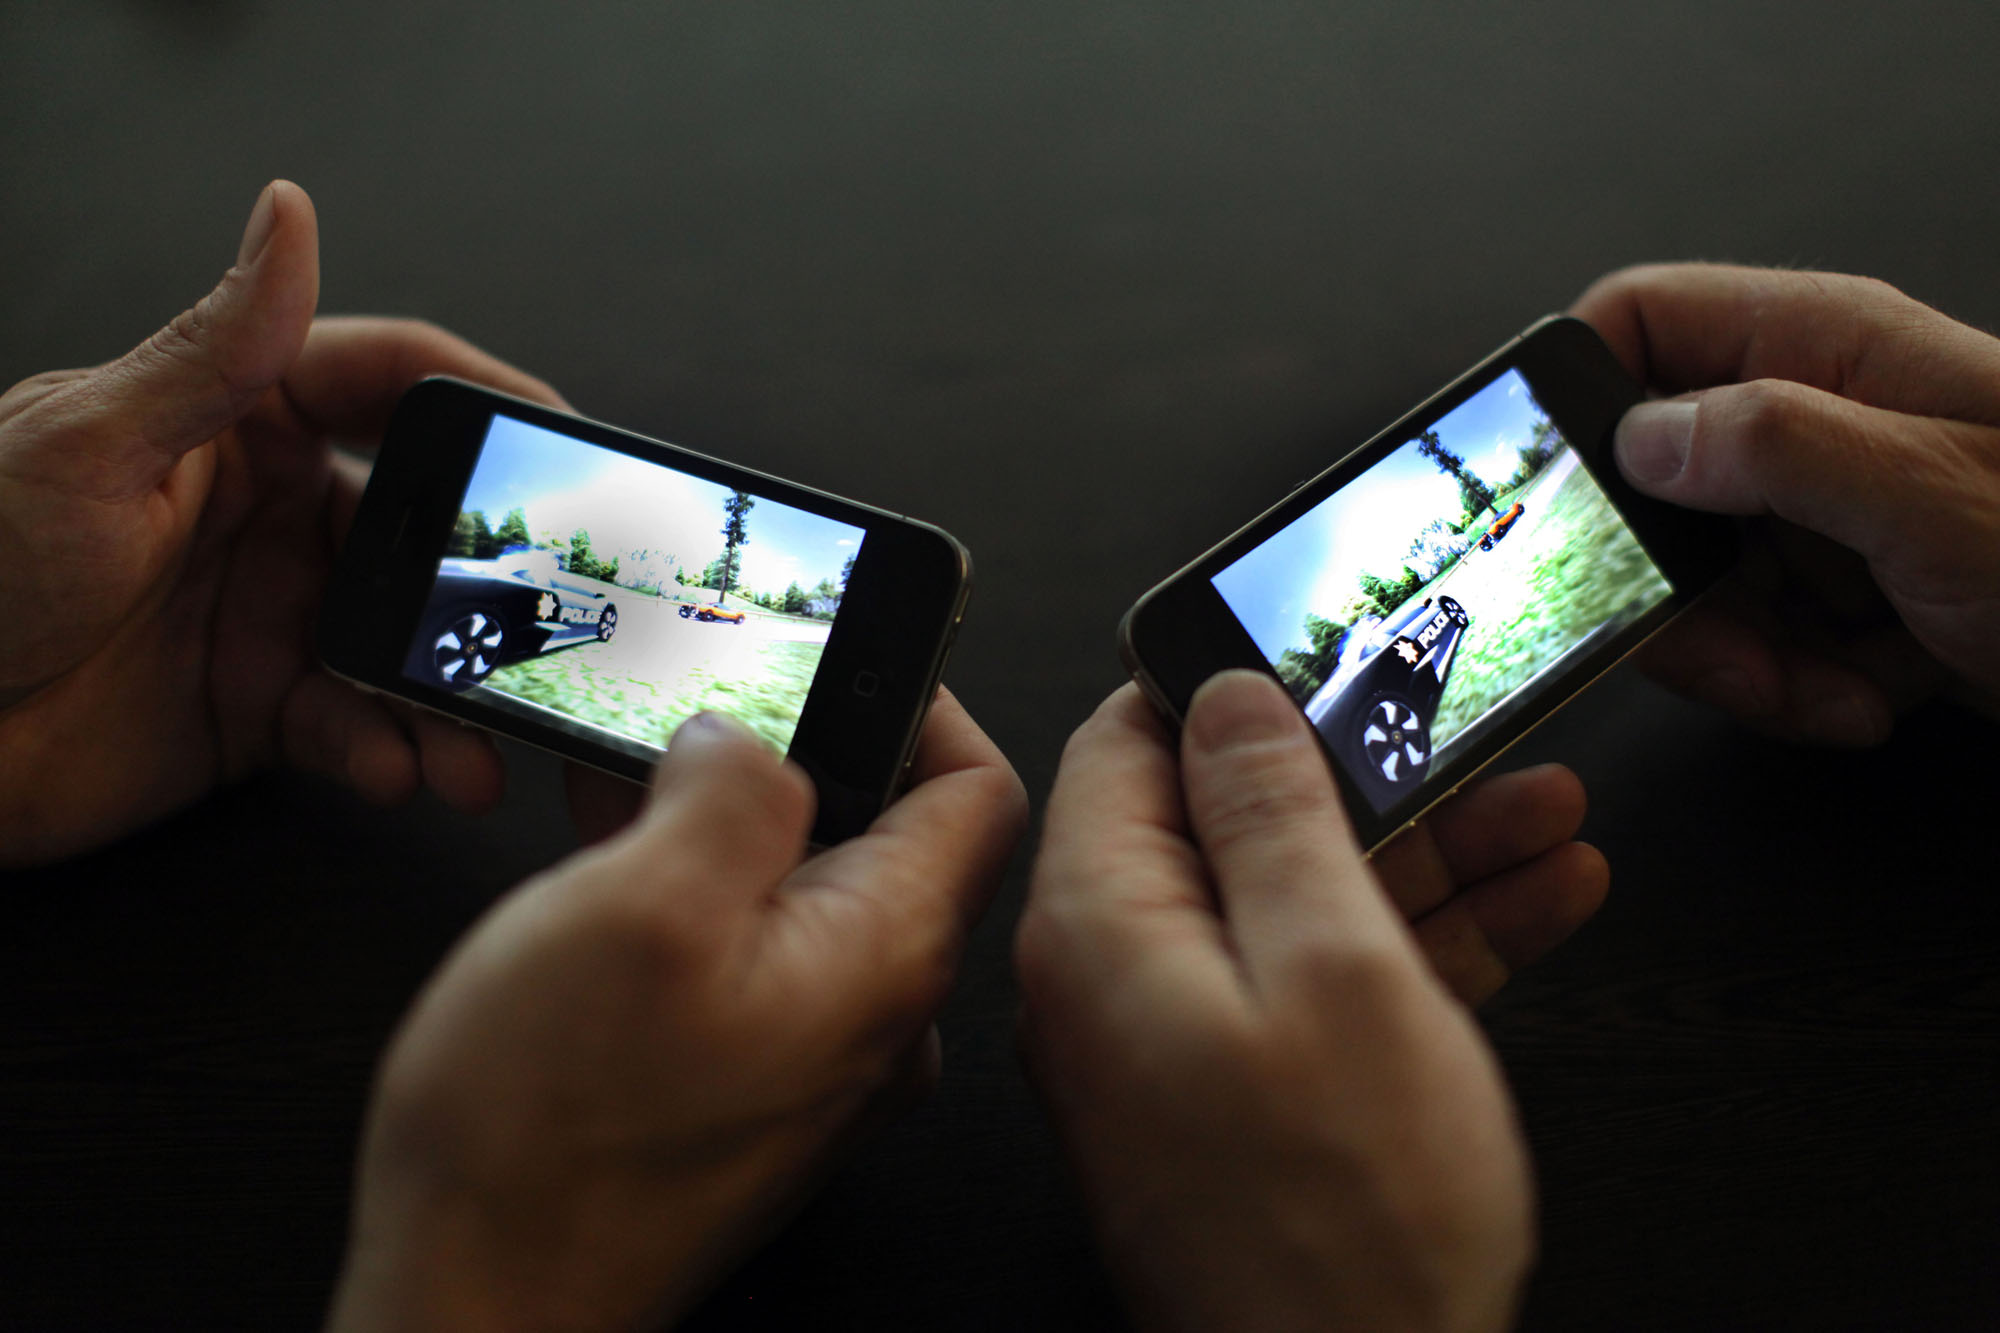 Two people mobile gaming